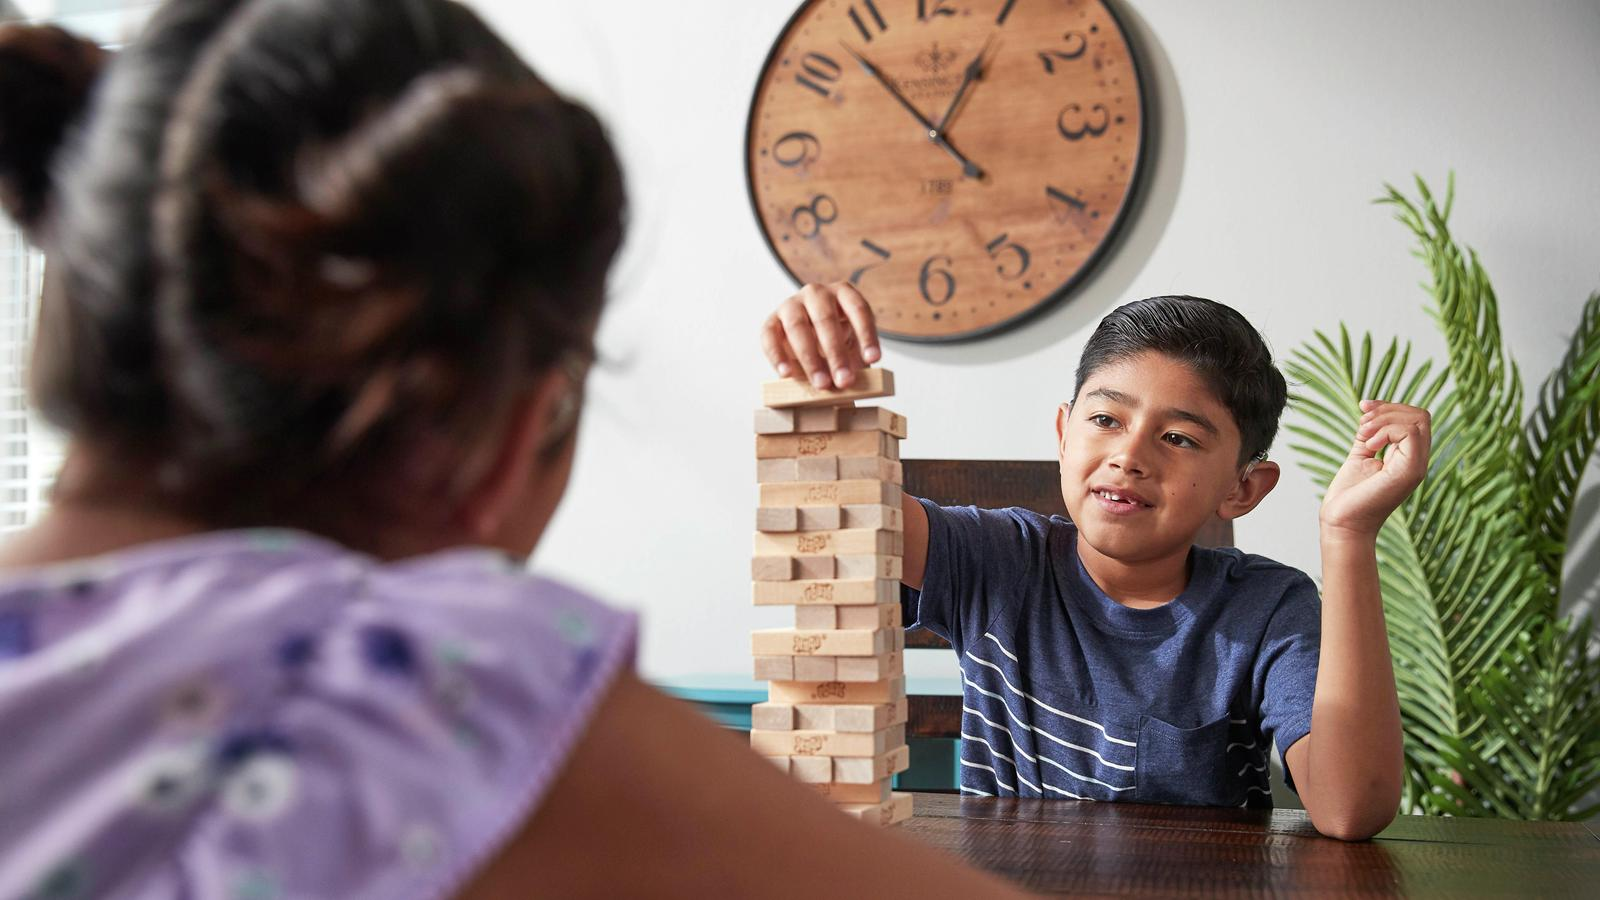 Cochlear recipient Kevin plays a block stacking game with a friend